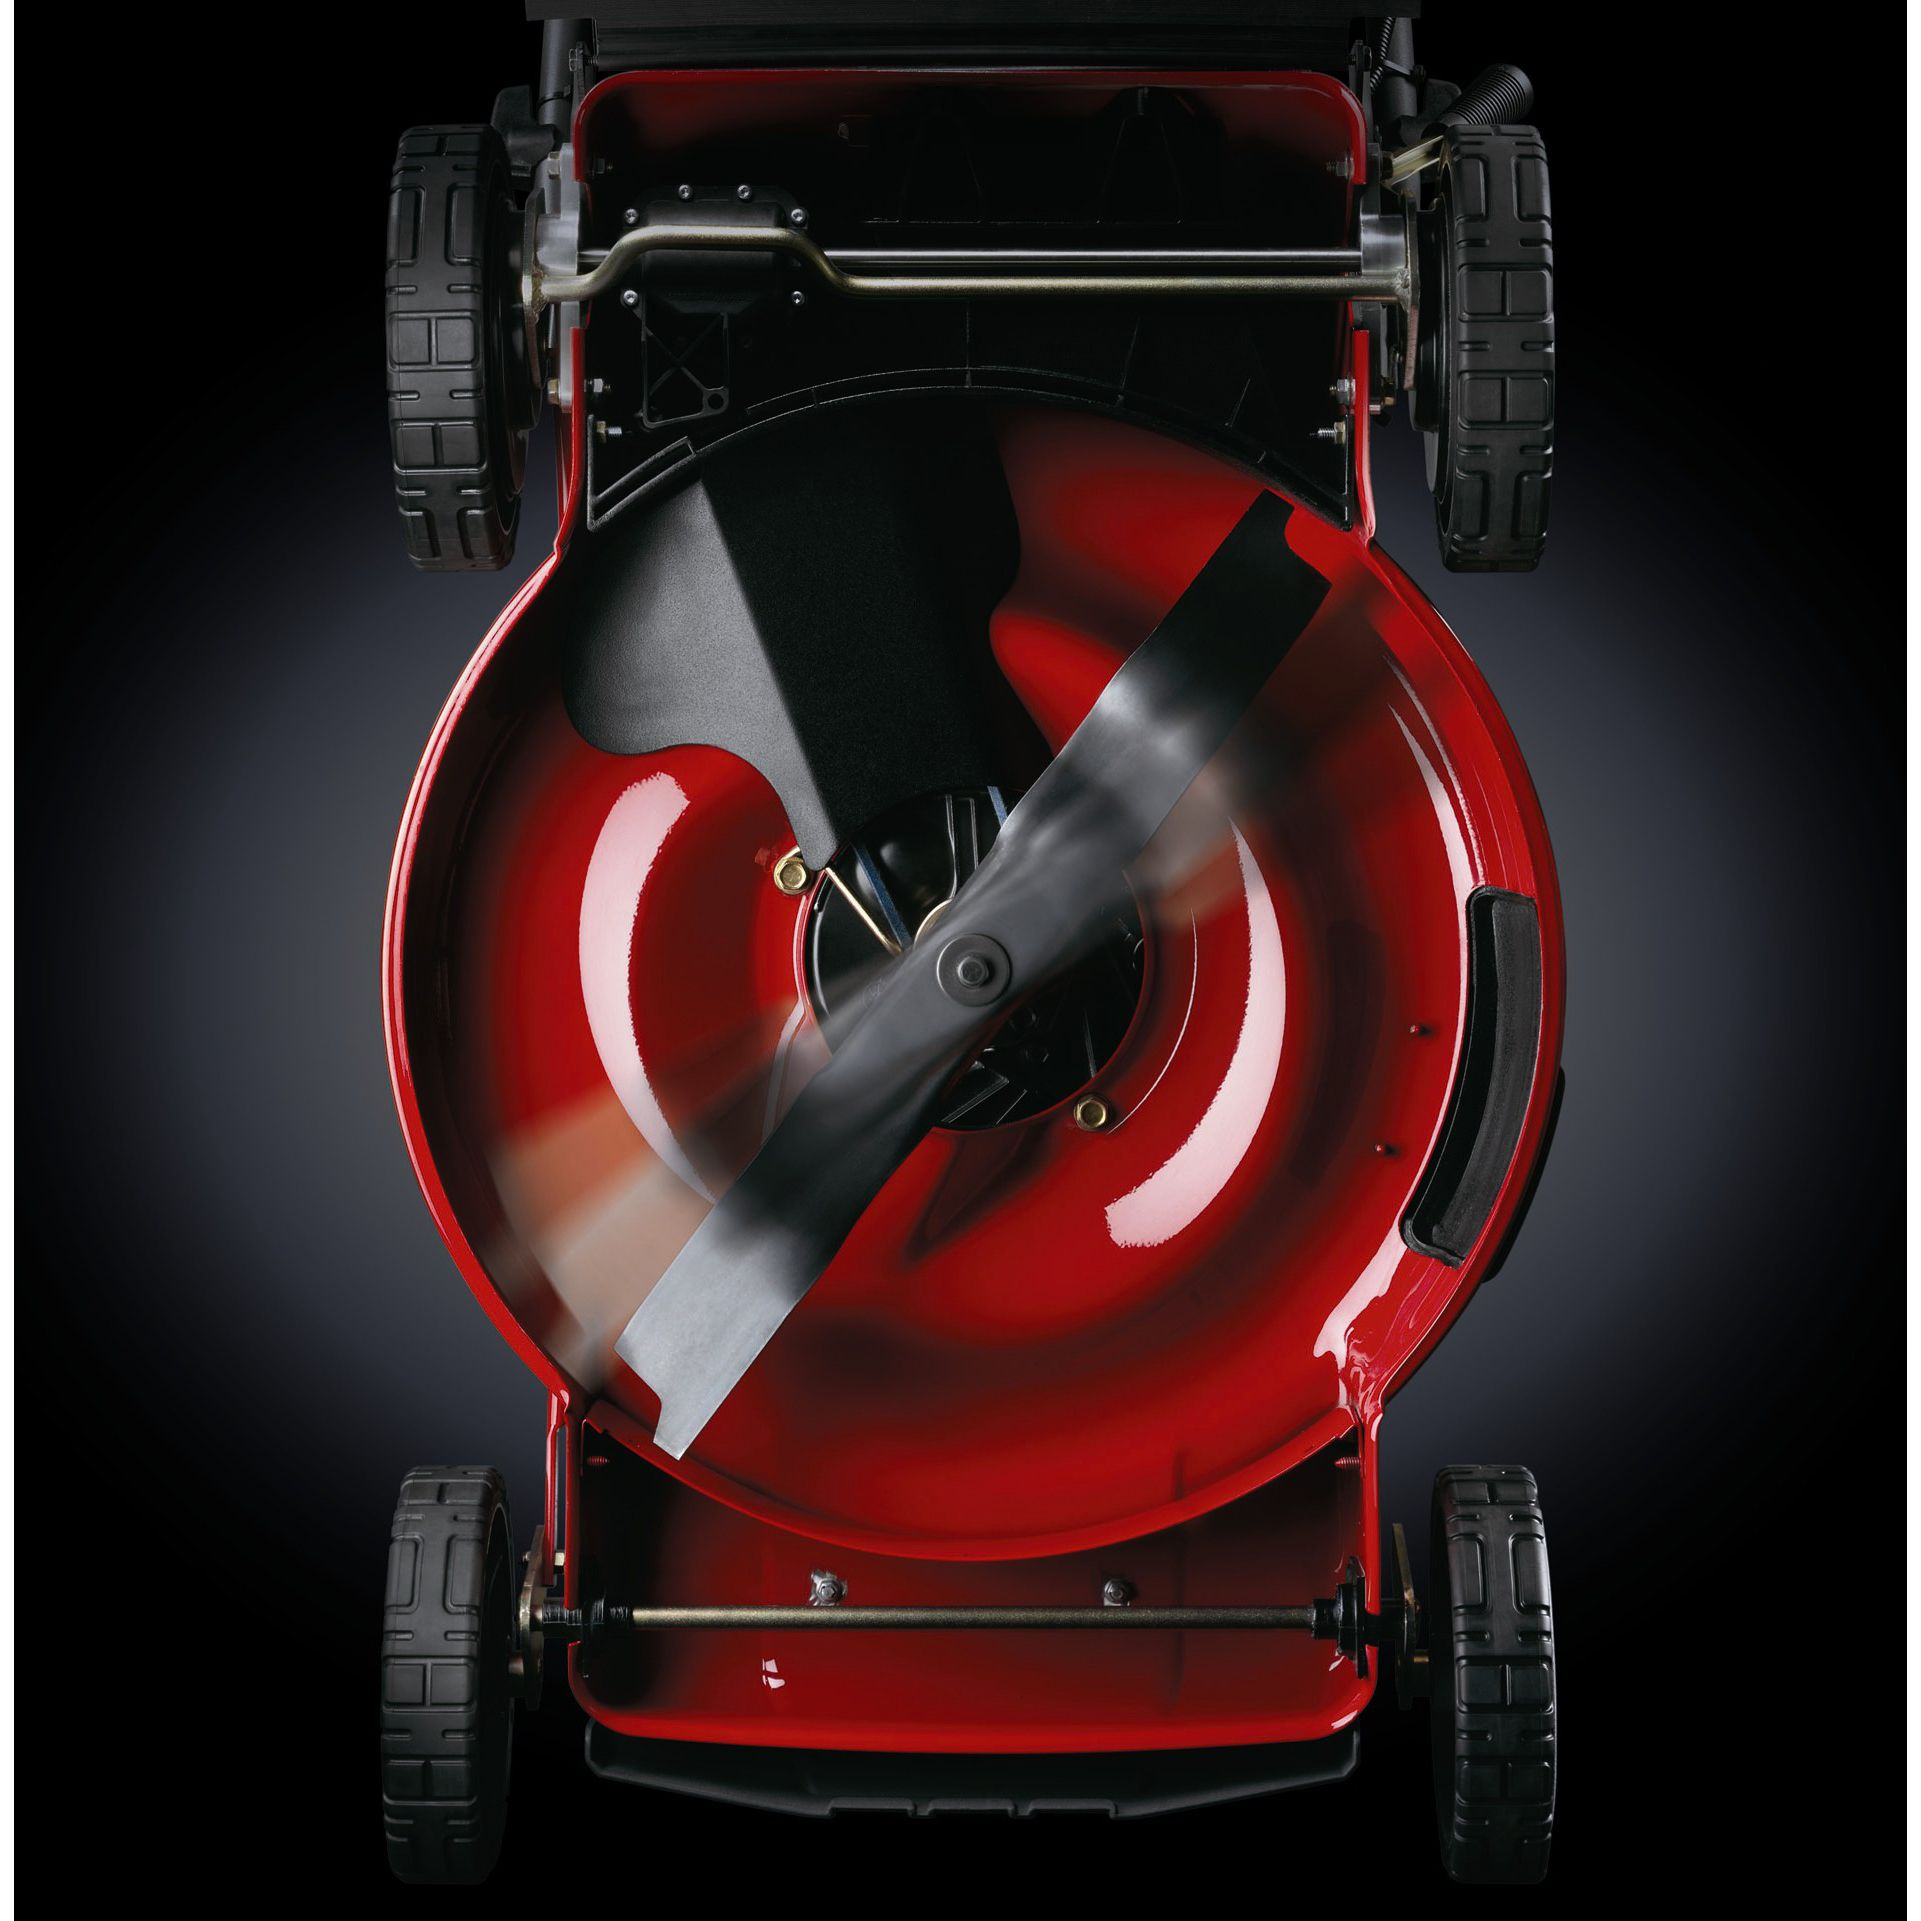 """Snapper 22"""" Front Wheel Drive Self Propelled High Wheel Mower w/ Briggs & Stratton Platinum 7.0 torque engine and REACT™ Drive Sys"""